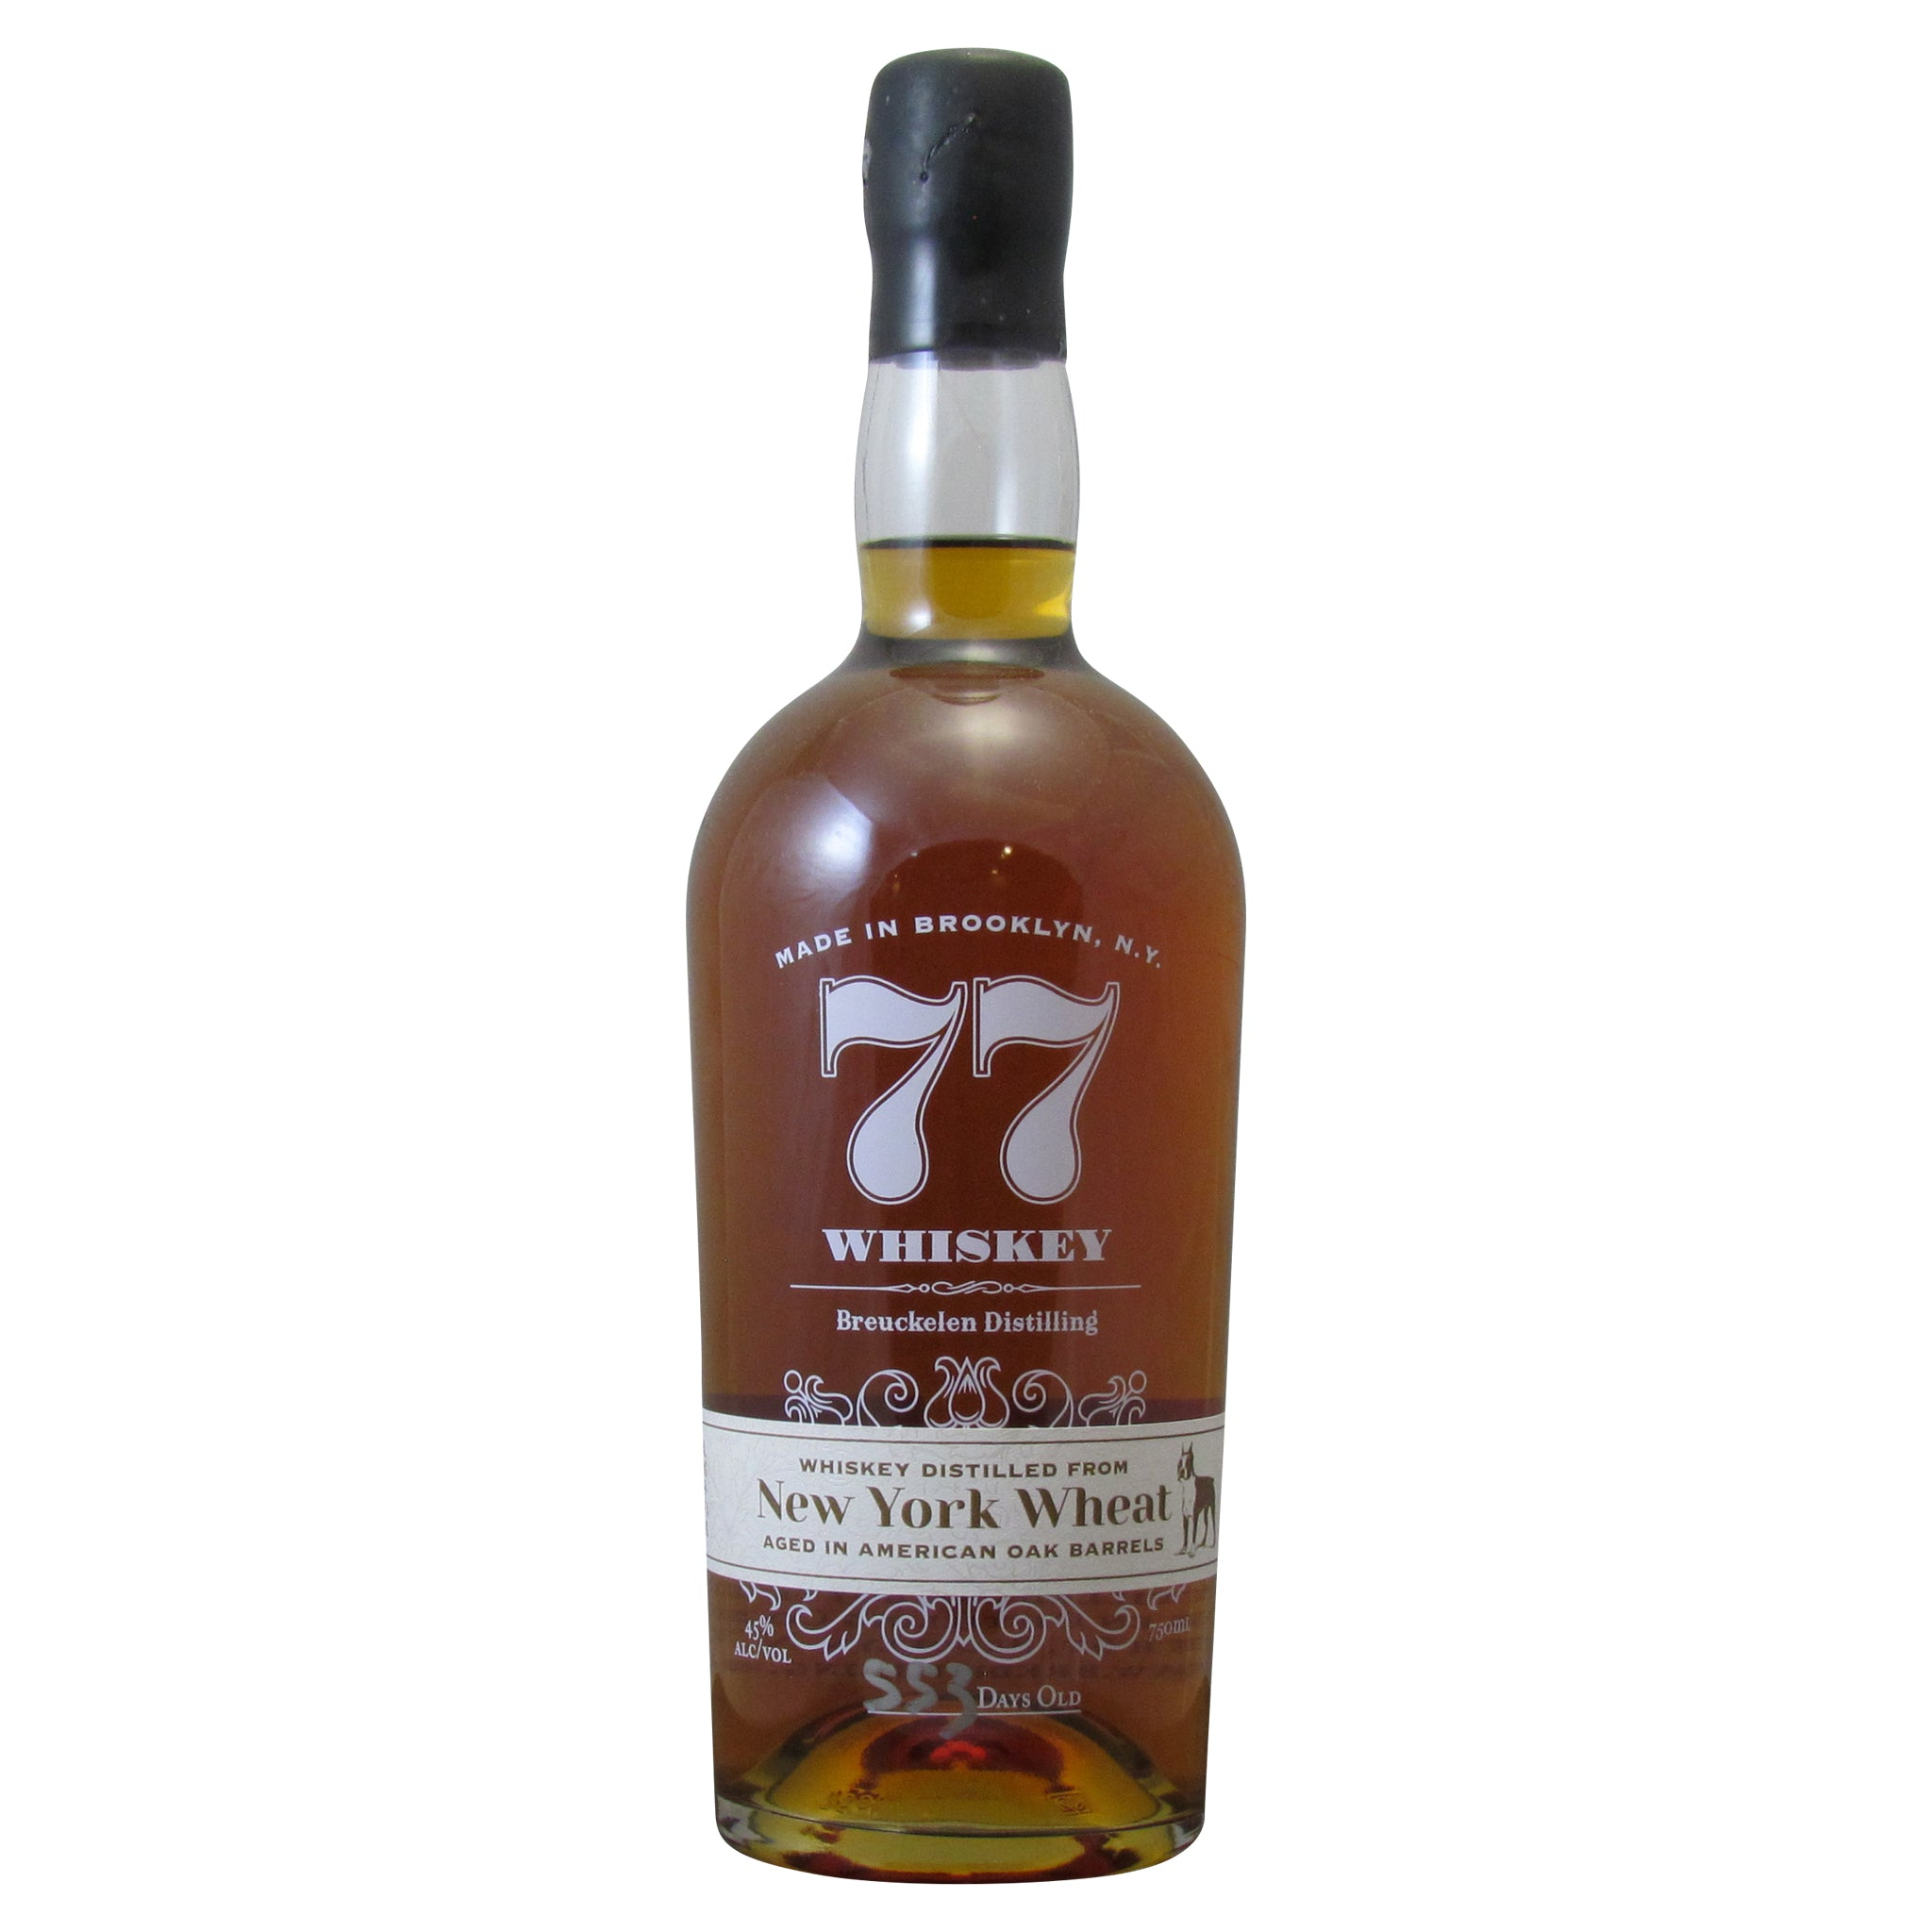 Breuckelen Distilling 77 Whiskey New York Wheat